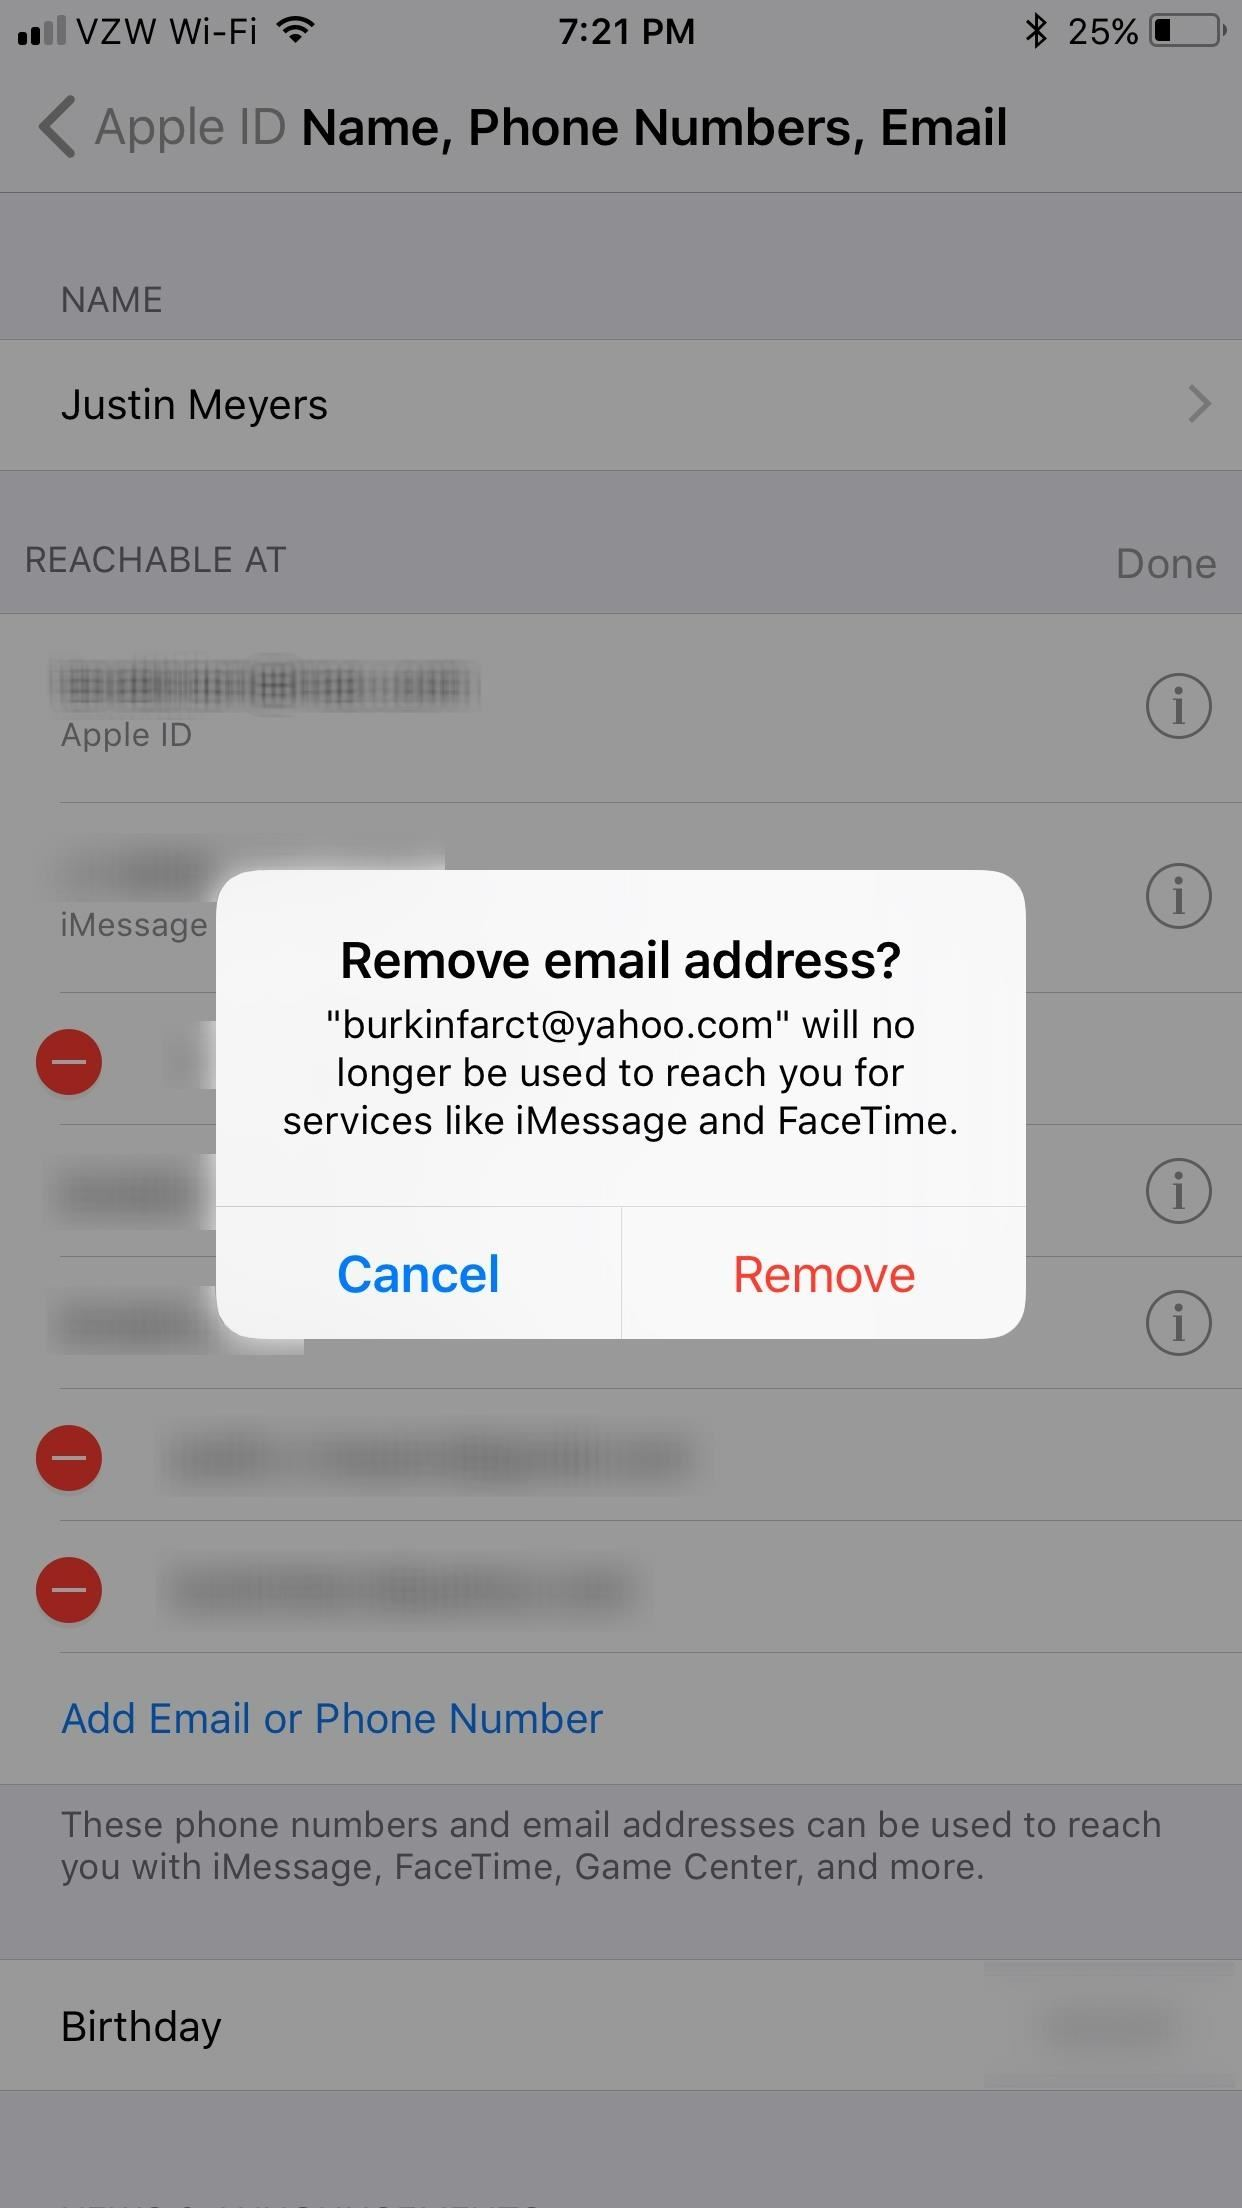 How to Add or Remove Email Addresses to Be Reached At for